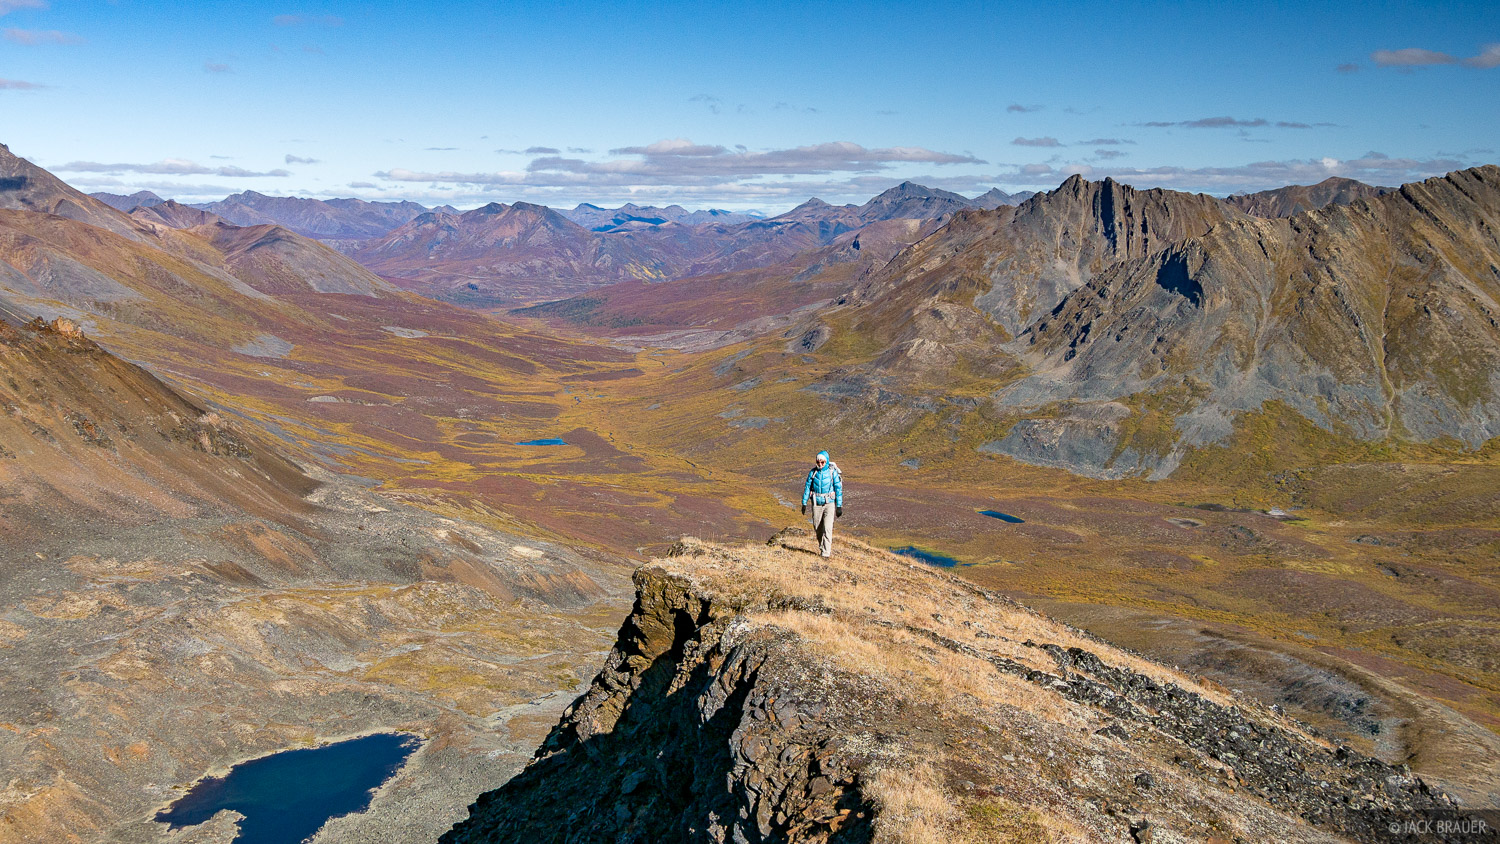 During our layover day at Divide Lake, we hiked up nearby Mount Frank Rae, which offered a huge view of the Tombstone Range and...